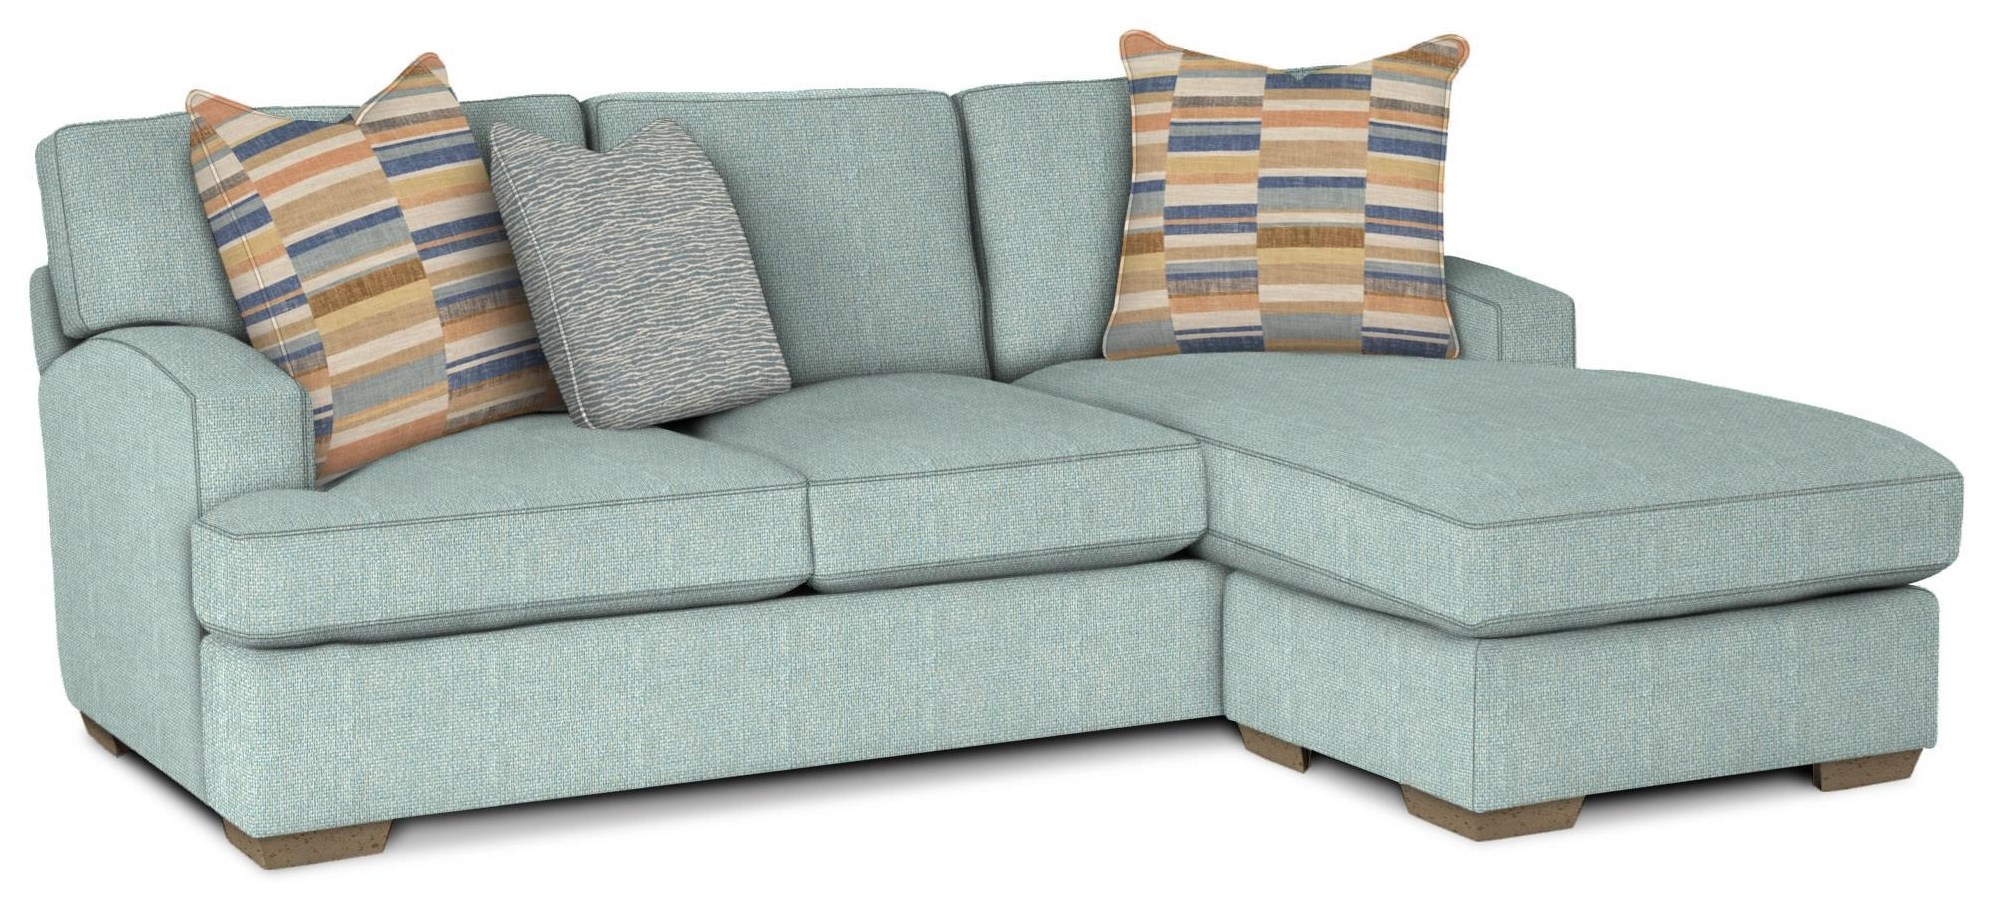 785350 Sofa w/ Chaise by Craftmaster at Esprit Decor Home Furnishings